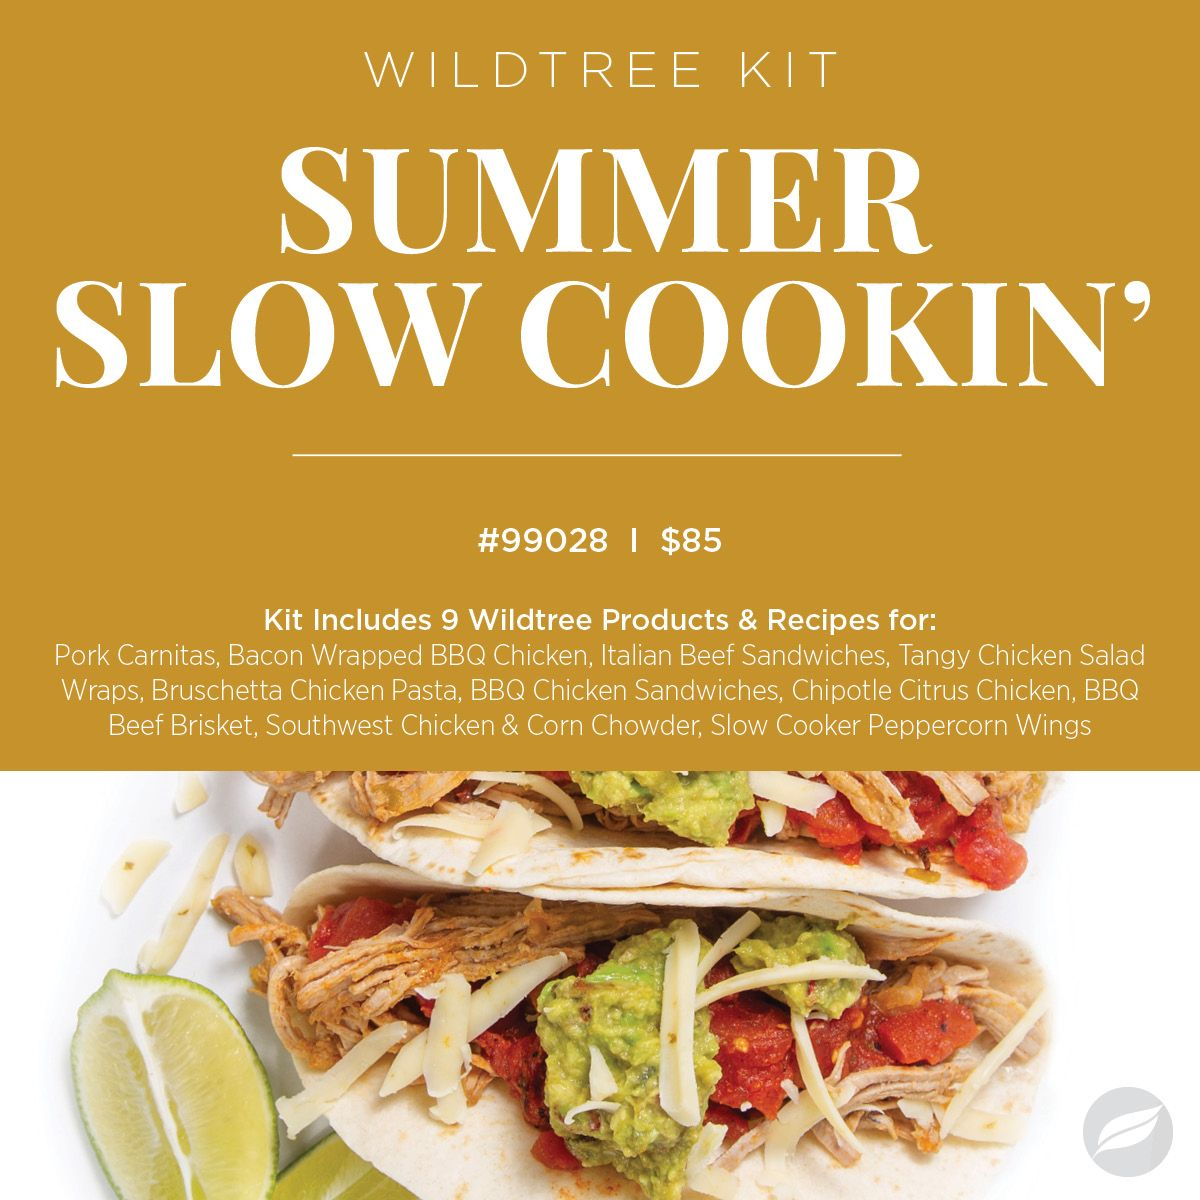 Wildtree Kits walk you through the simple steps of